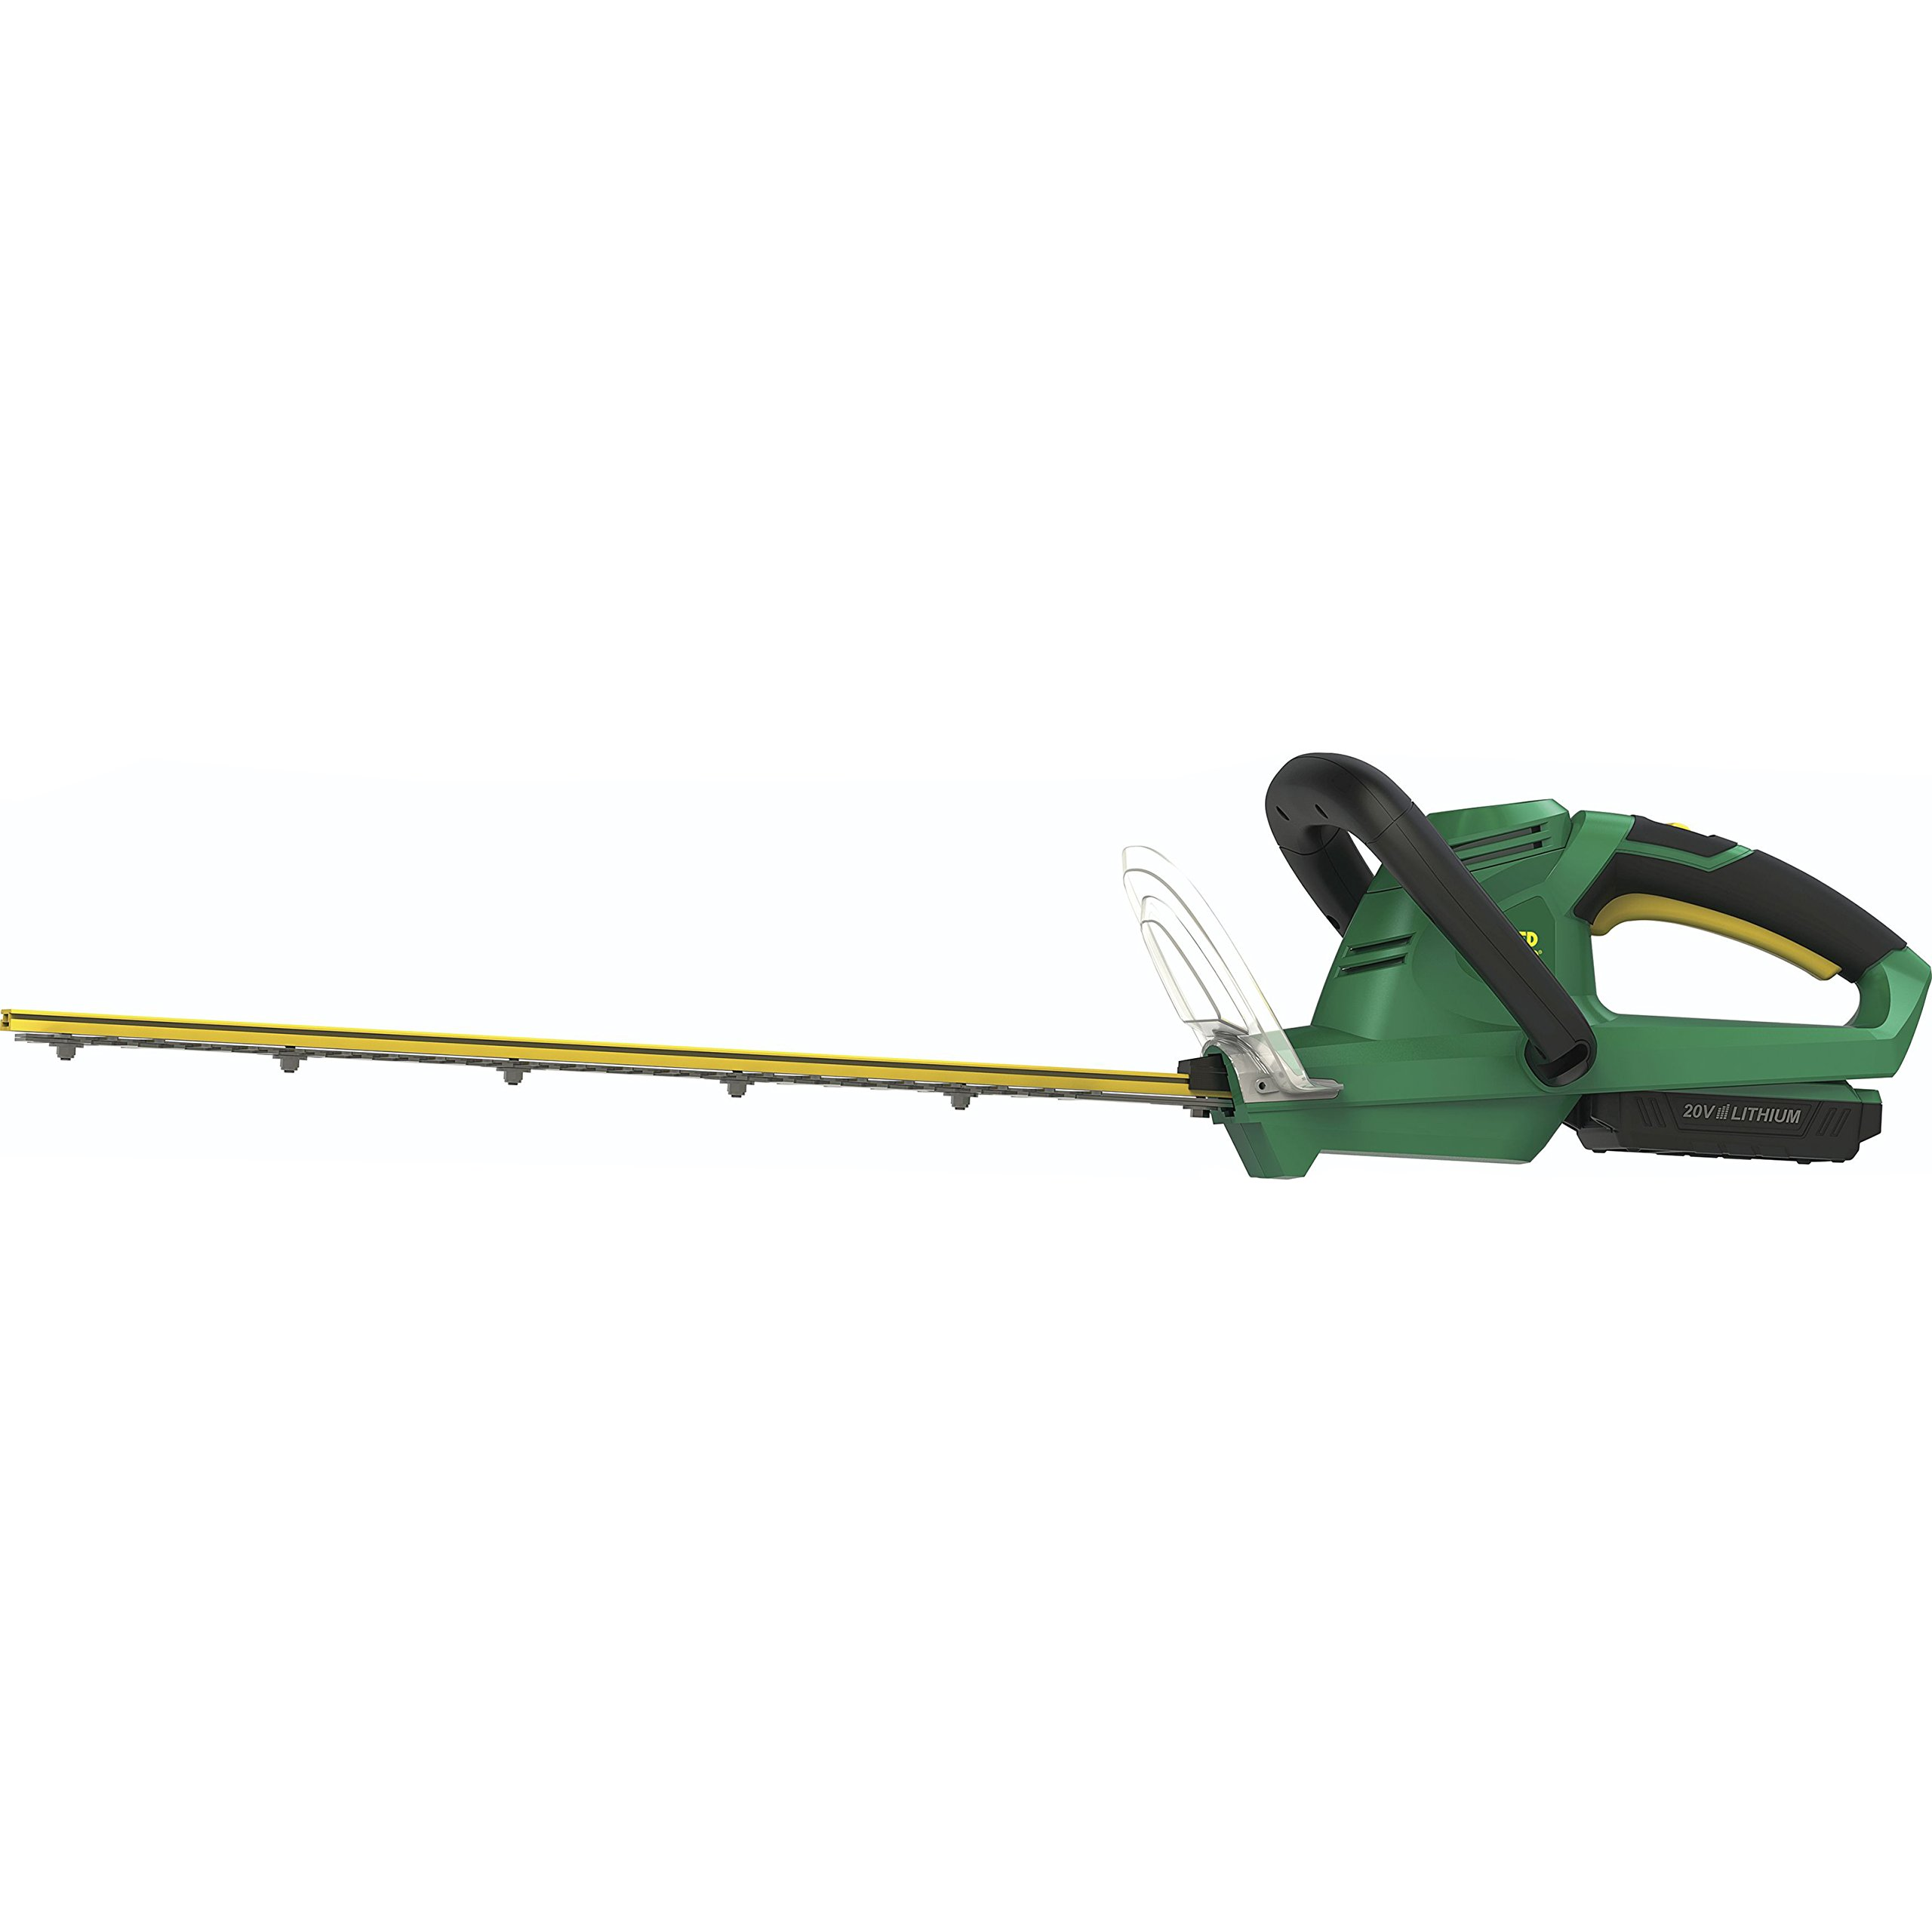 Weed Eater WE20VH 20-Volt Lithium-Ion Rechargeable Battery Powered Hedge Trimmer - 967599801